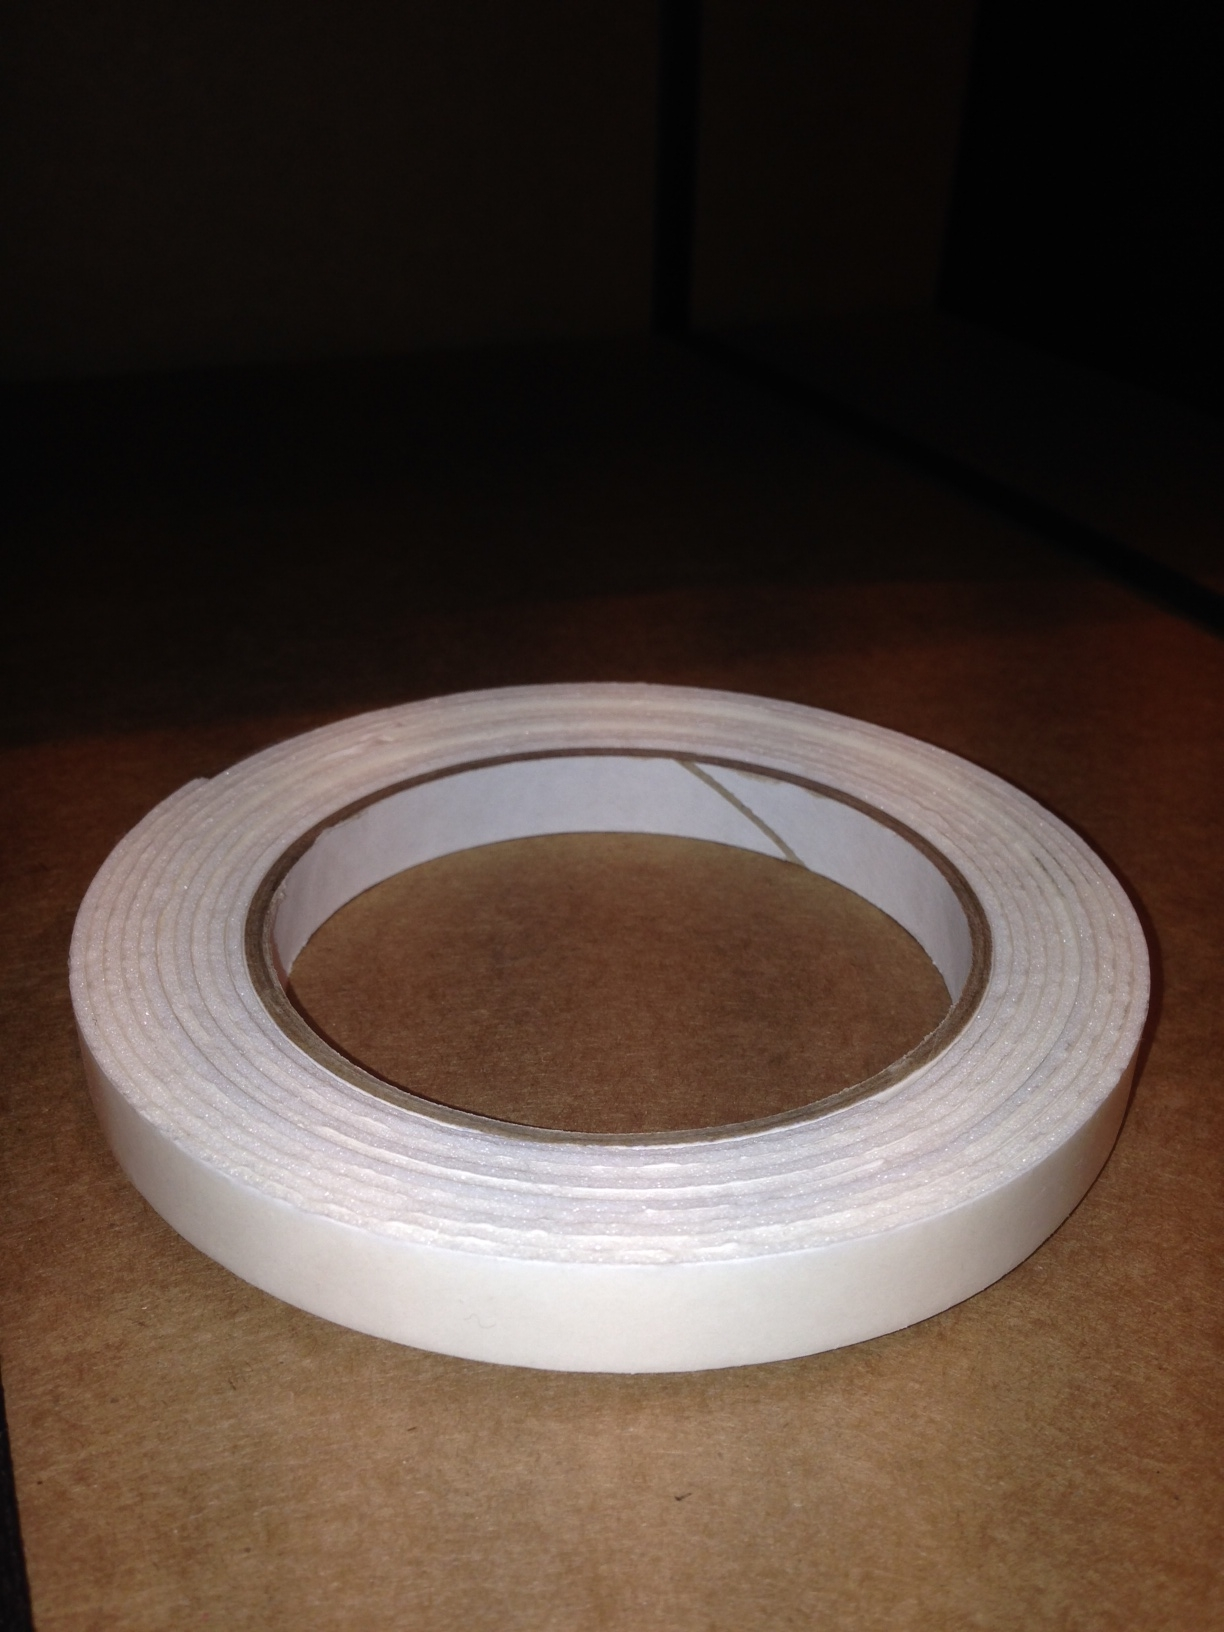 12mm x 1.5mm x 3m D/S Foam Fixing Tape (White)